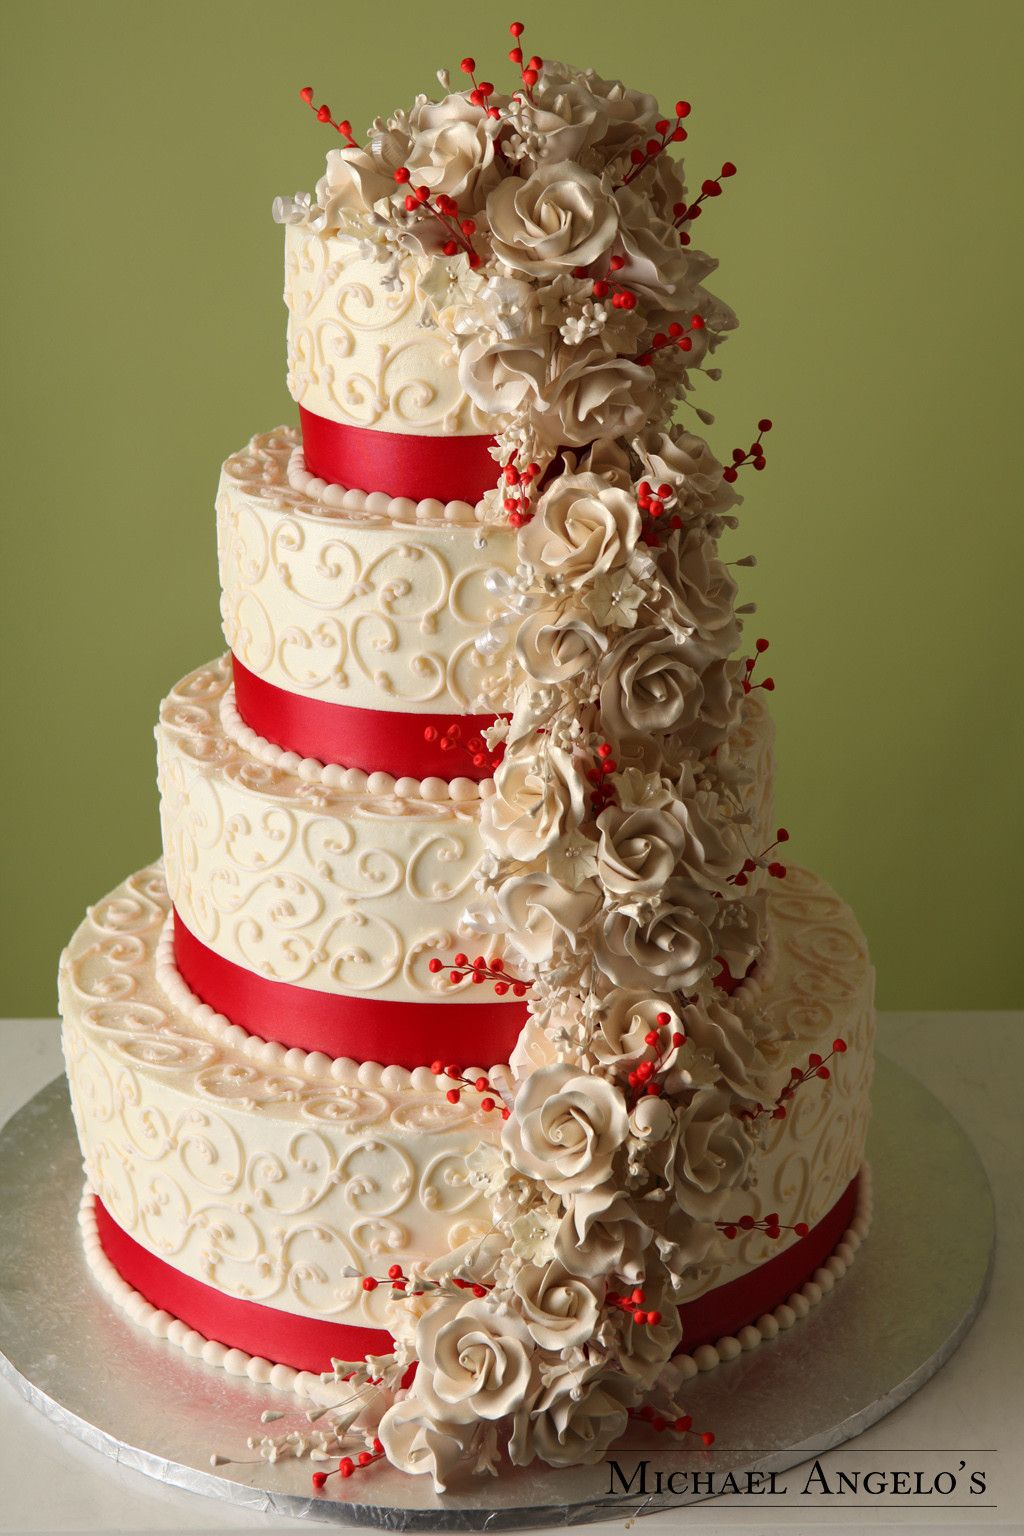 red ribbon wedding cakes scarlet amp ivory 19floral berries gum paste and berries 19143